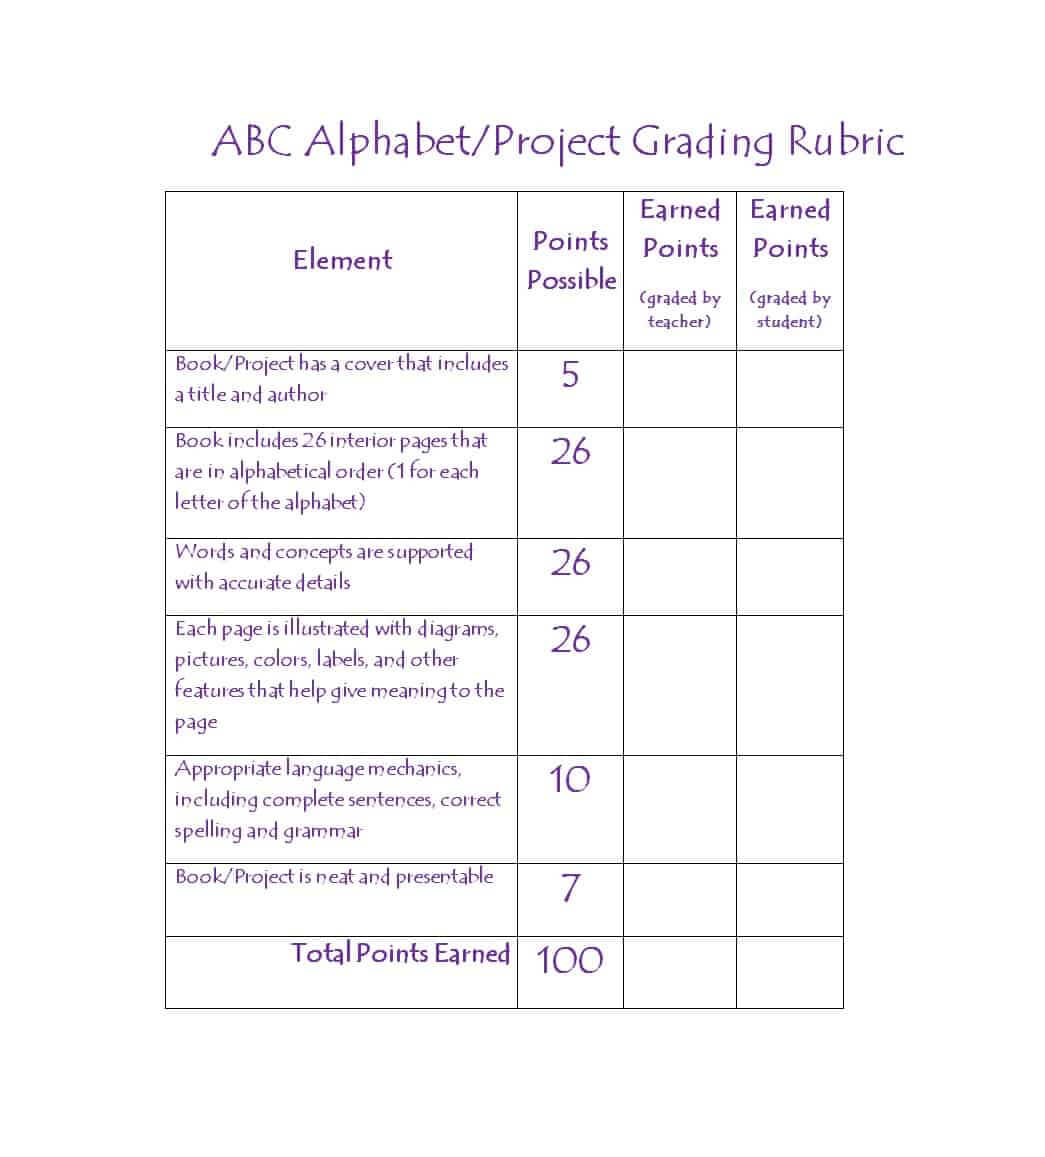 46 Editable Rubric Templates (Word Format) ᐅ Template Lab Within Blank Rubric Template